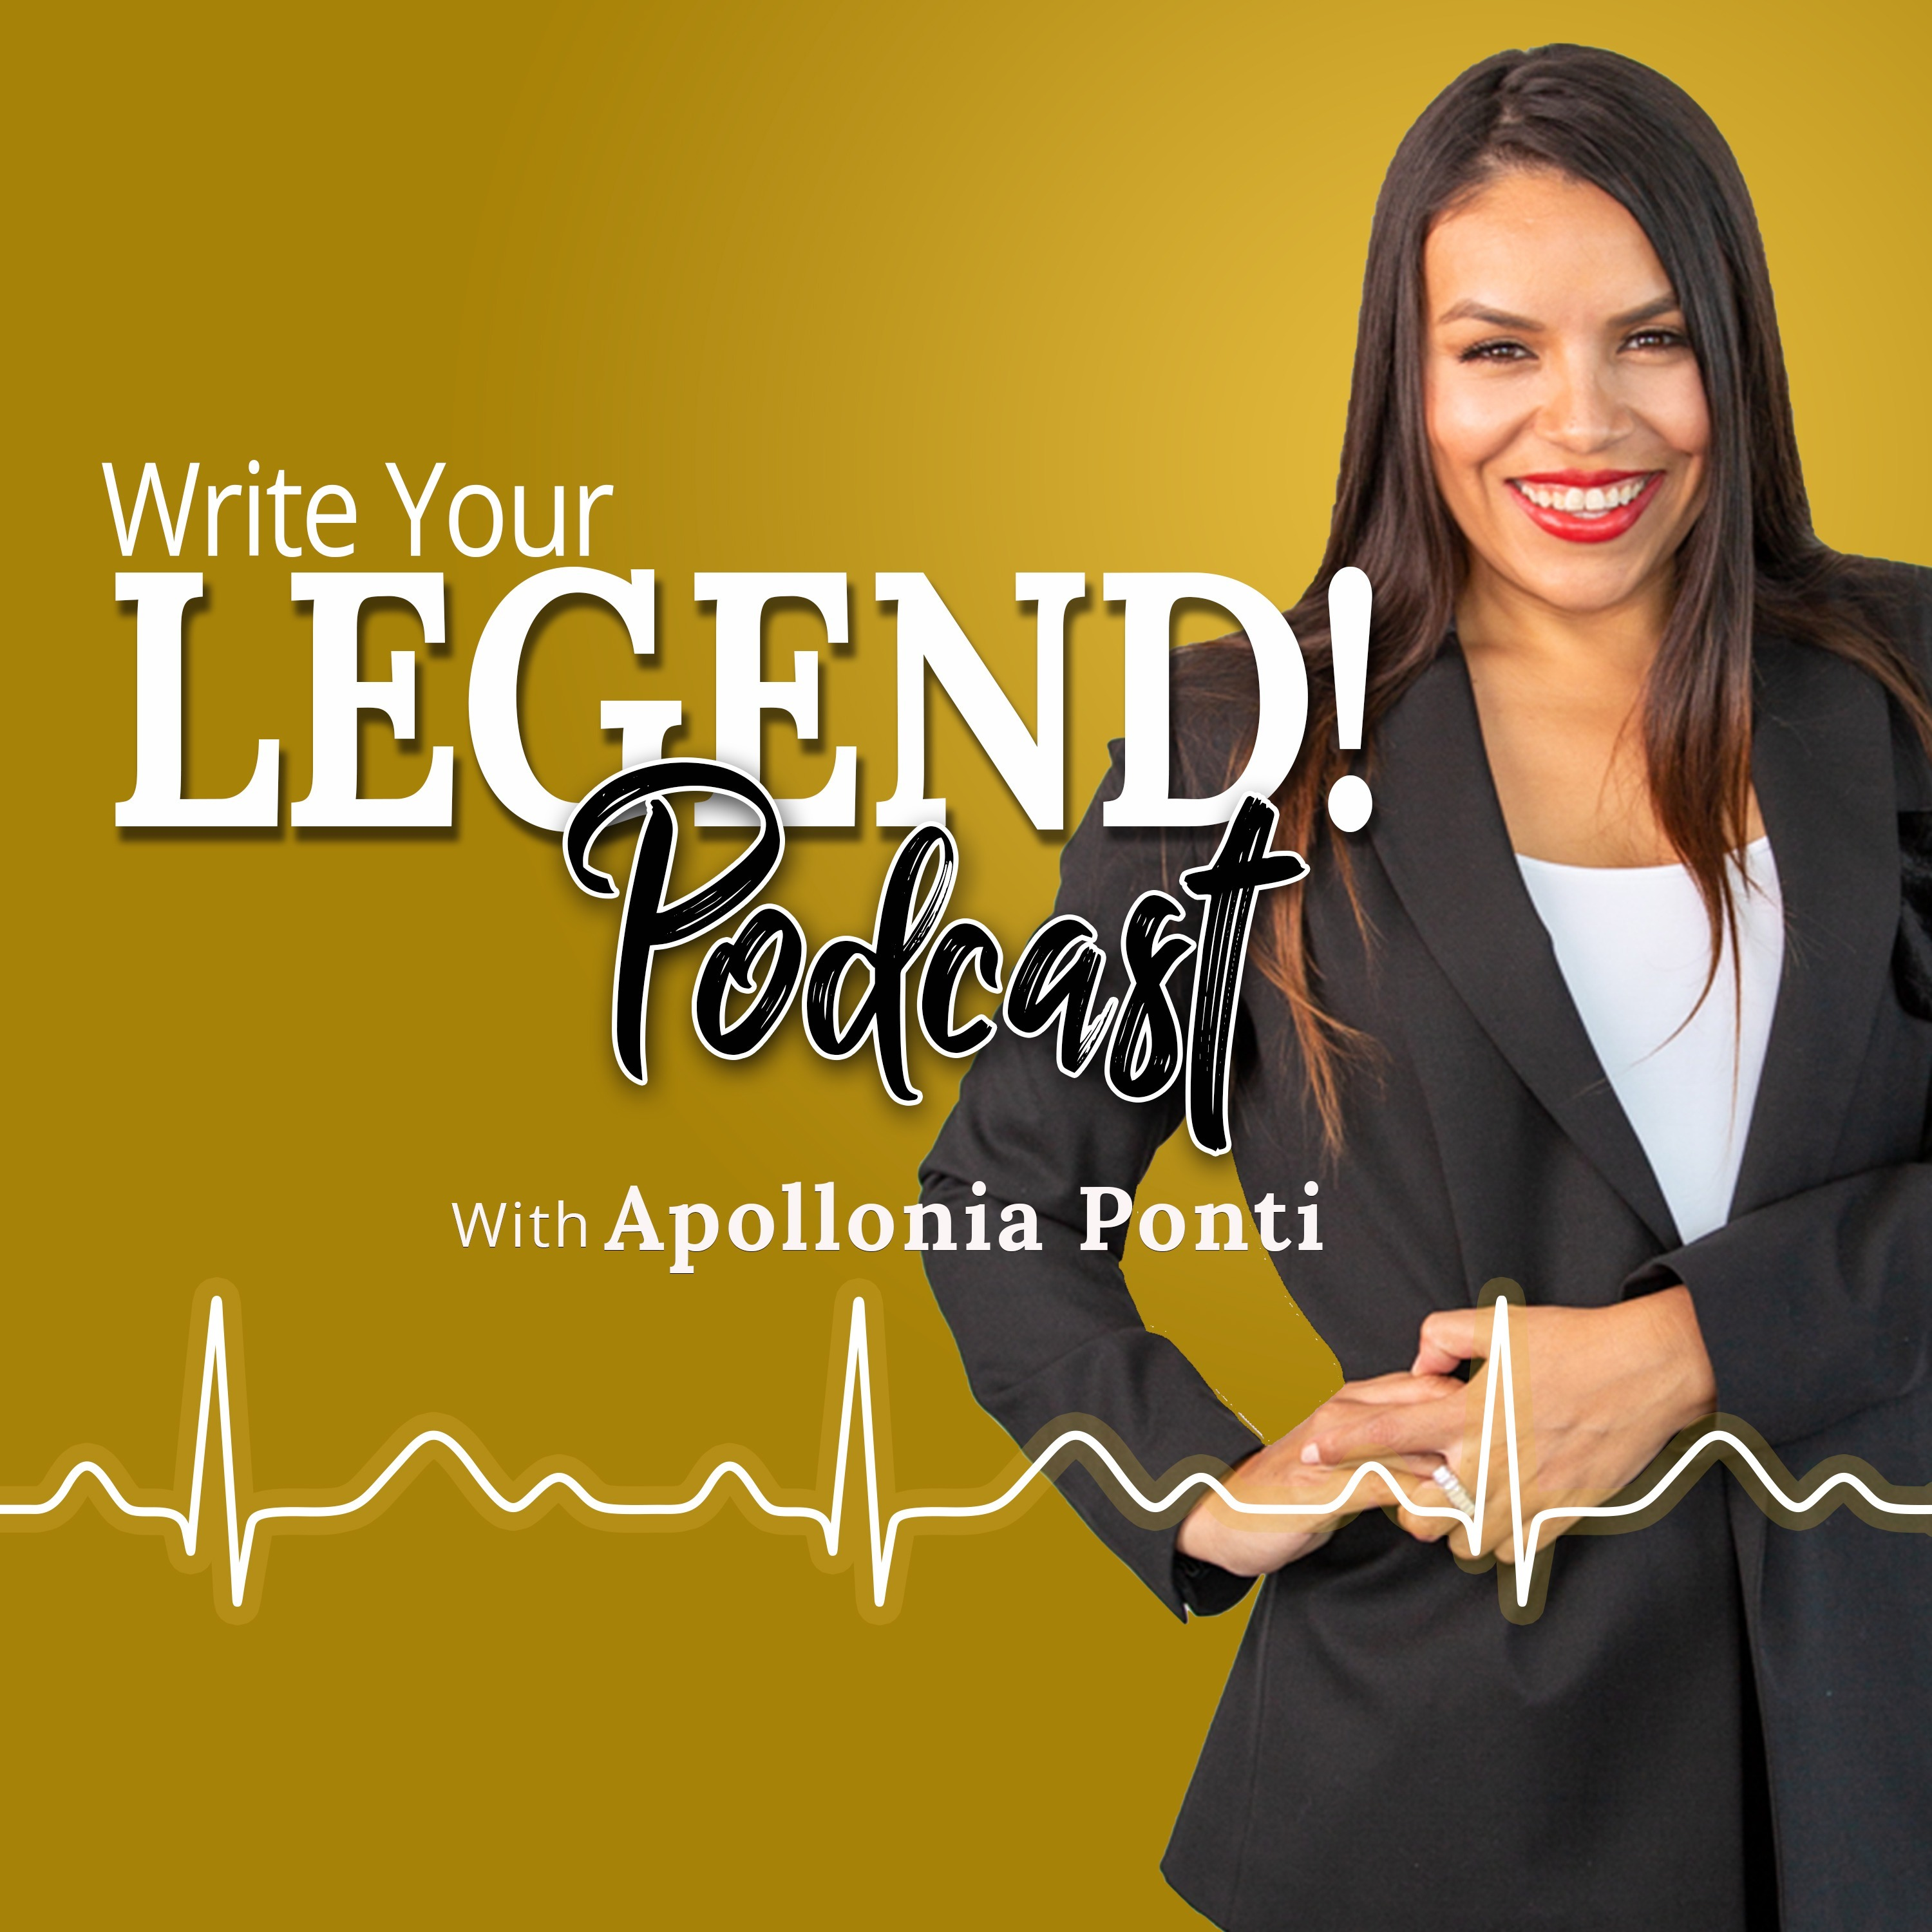 99.9% of Men NEED To TEST Women's Standards Like THIS! | Write Your Legend Podcast with Apollonia Ponti show art